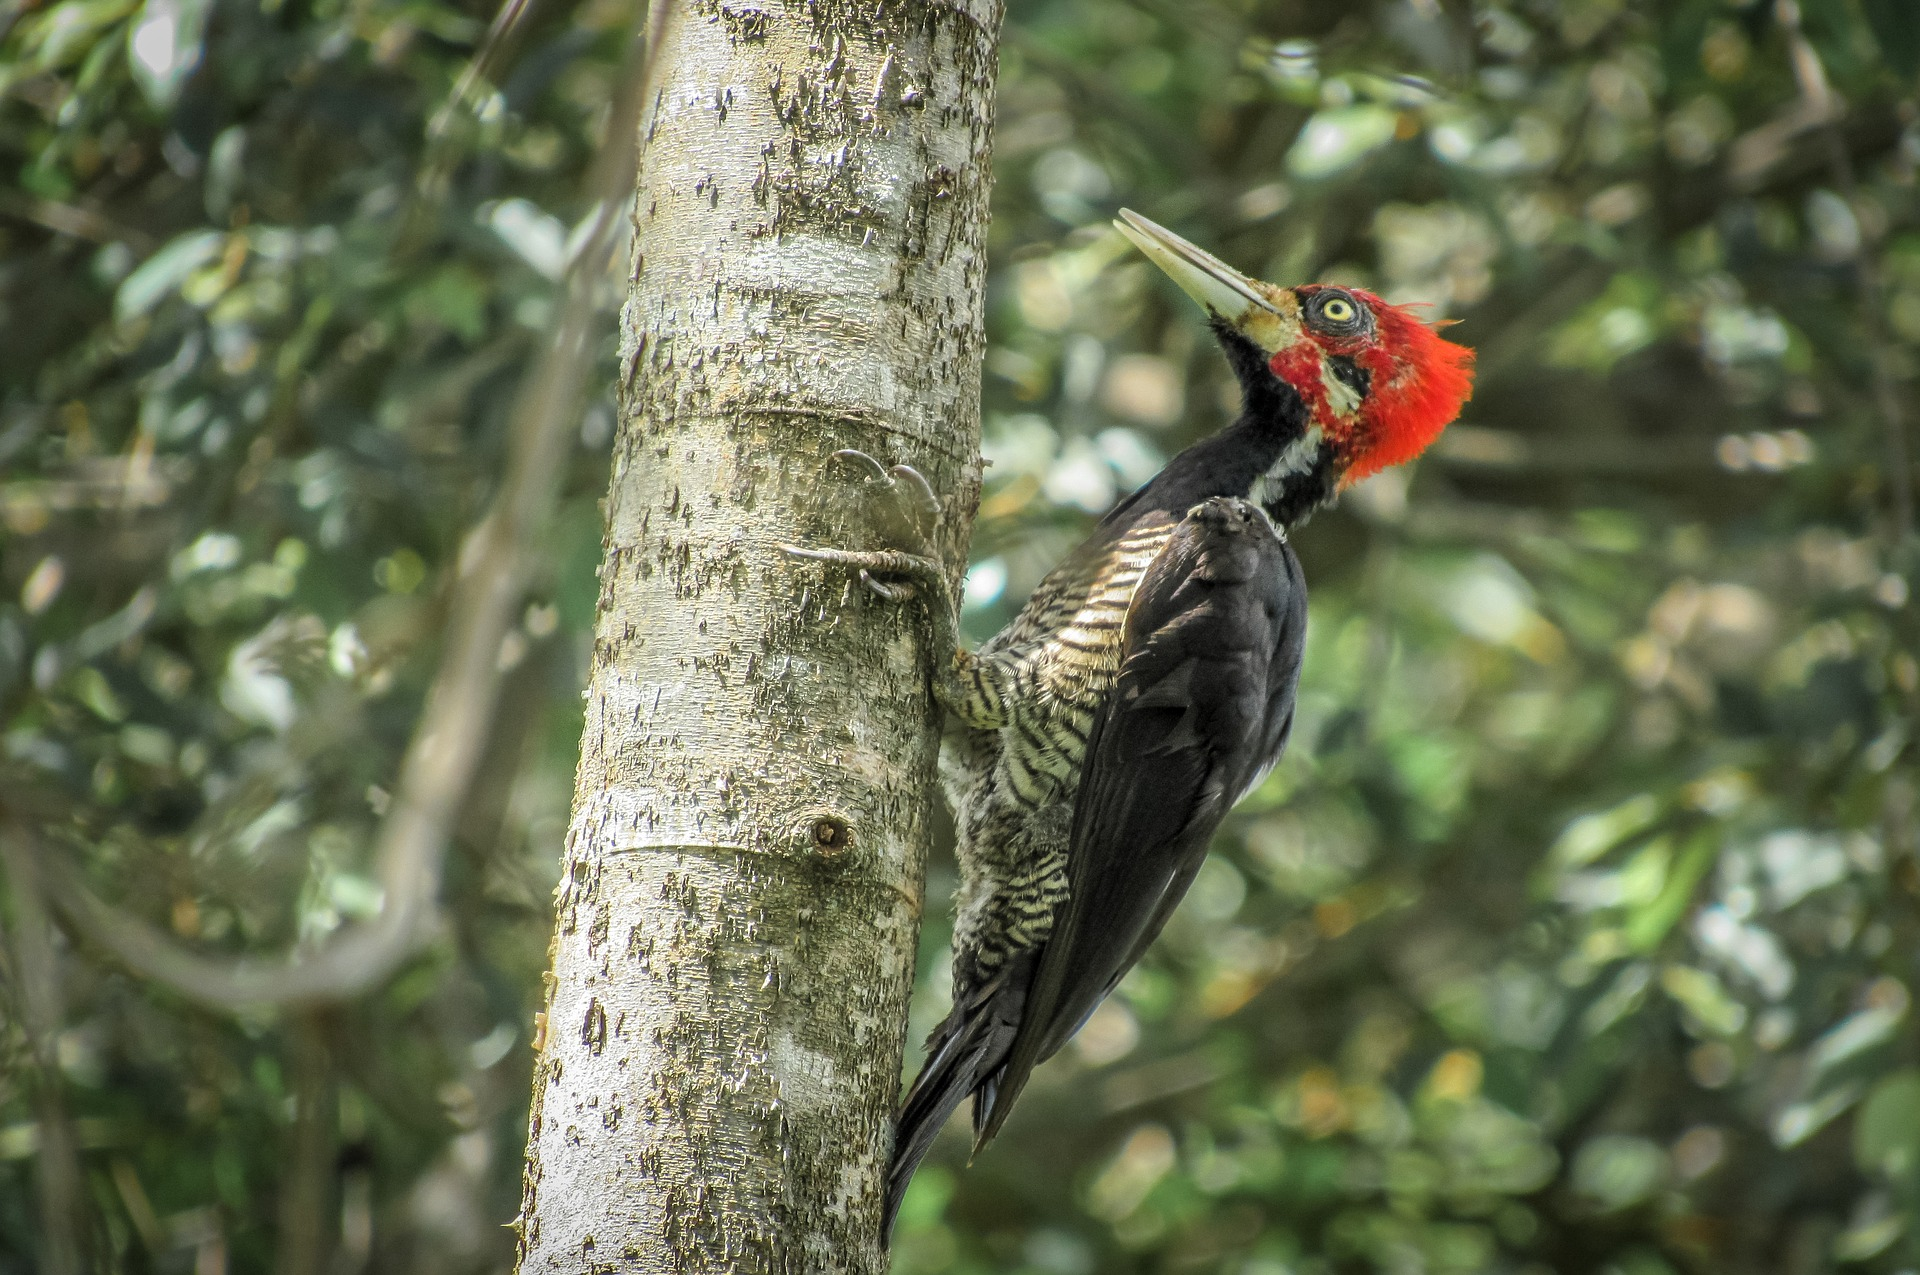 Red headed woodpecker symbolic meaning whispers channels red headed woodpecker symbolic meaning whispers channels prophecies visions buycottarizona Images